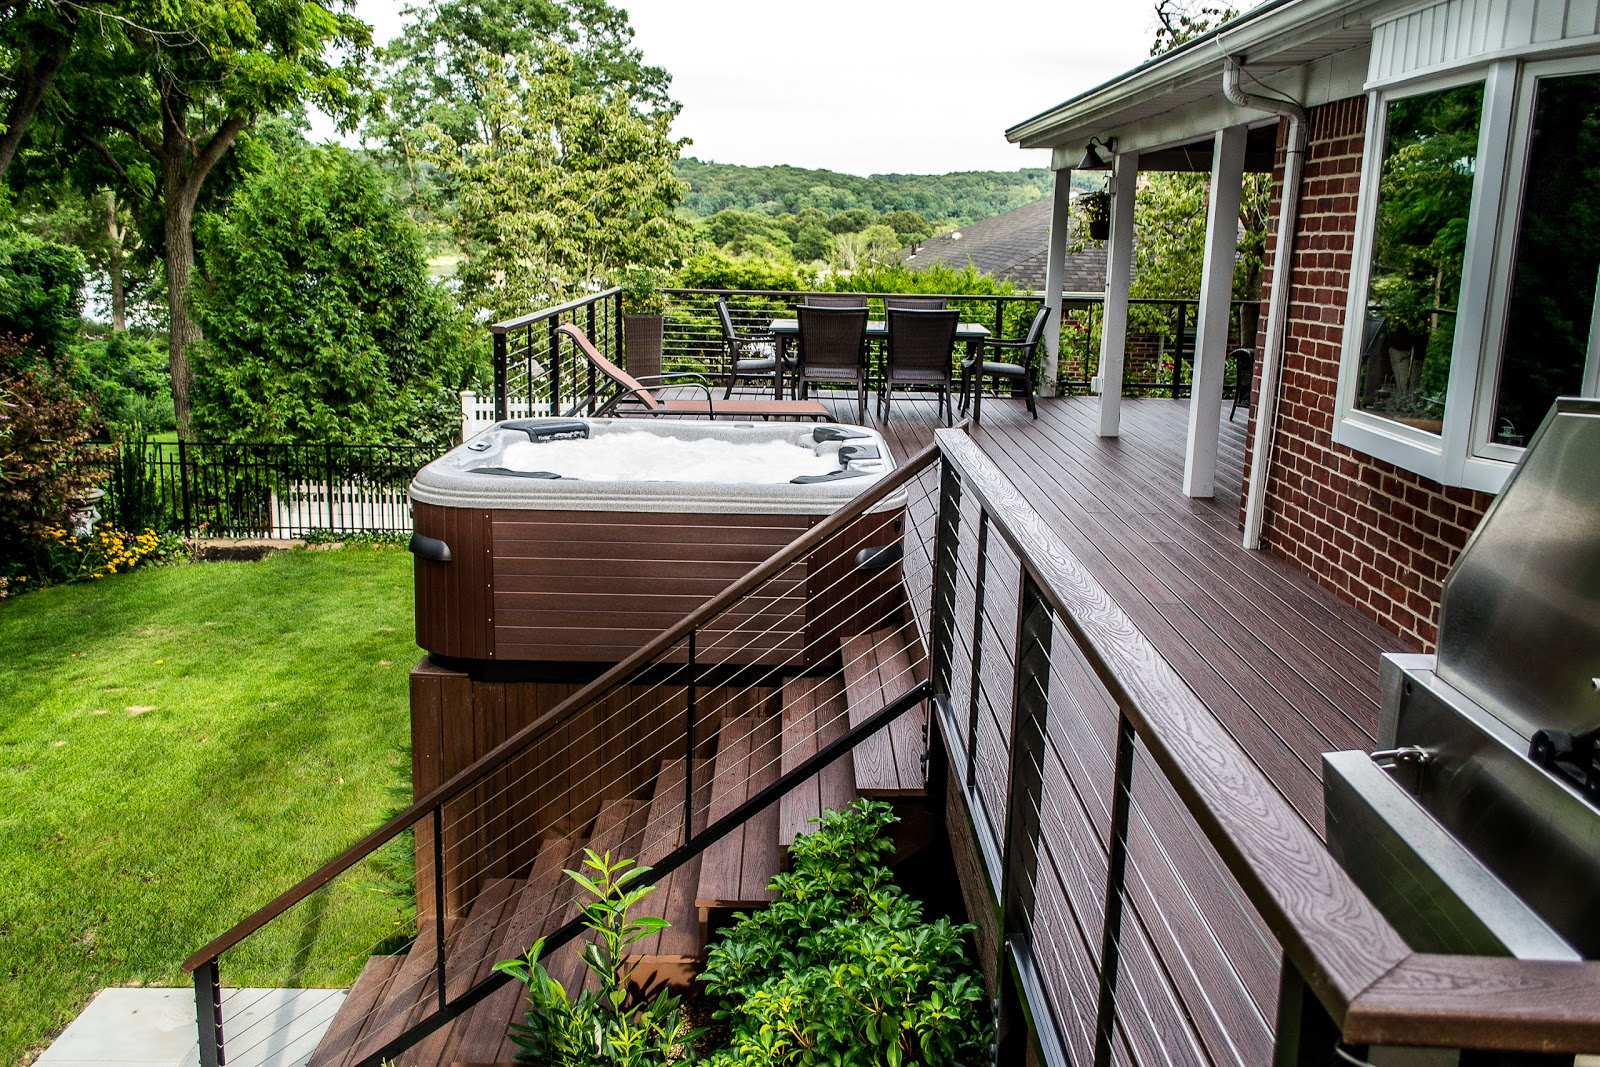 Photo of Best Hot Tubs Westbury Long Island in Westbury City, New York, United States - 3 Picture of Point of interest, Establishment, Store